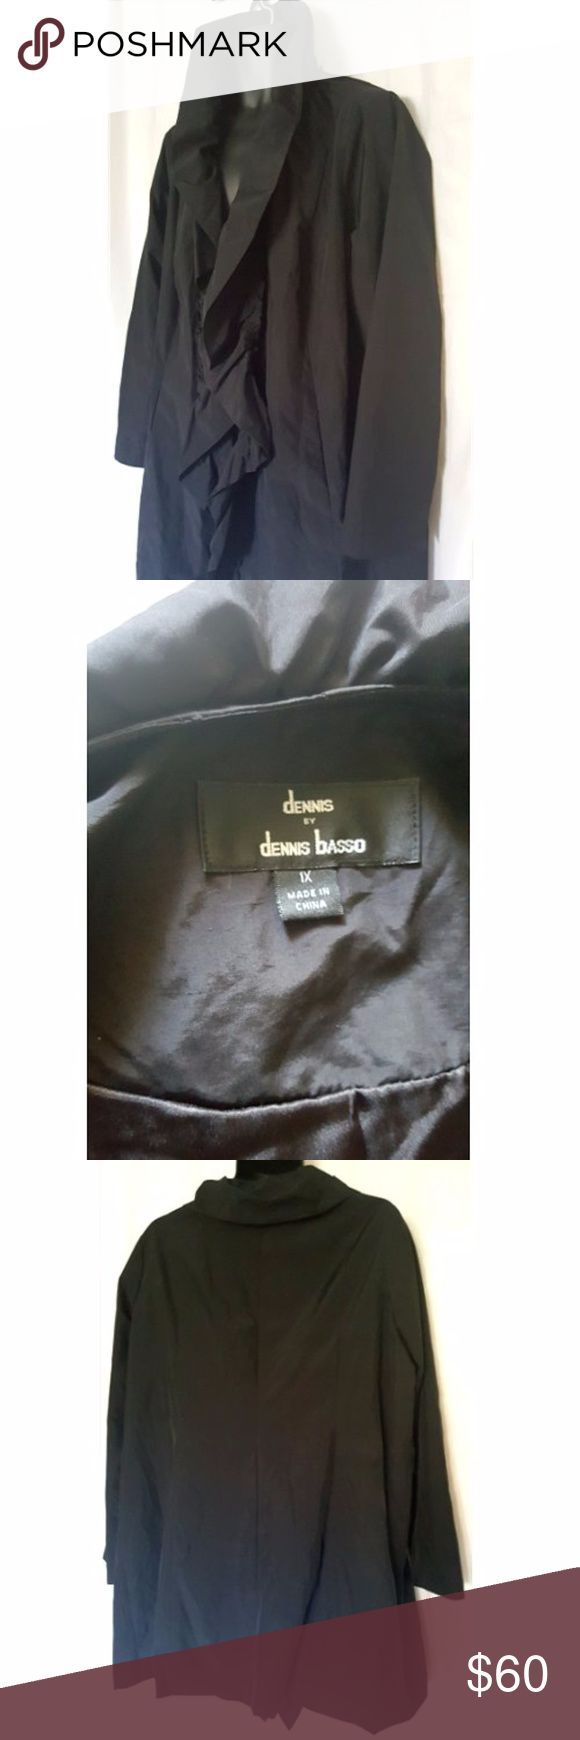 Water Resistant Raincoat Black Ruffle Size XL DENNIS BASSO Water Resistant Raincoat Black Ruffle Coat SIZE XL Note: NO BELT Like new See photos for approximate measurements From a smoke free, perfume free and pet free home Dennis Basso Jackets & Coats